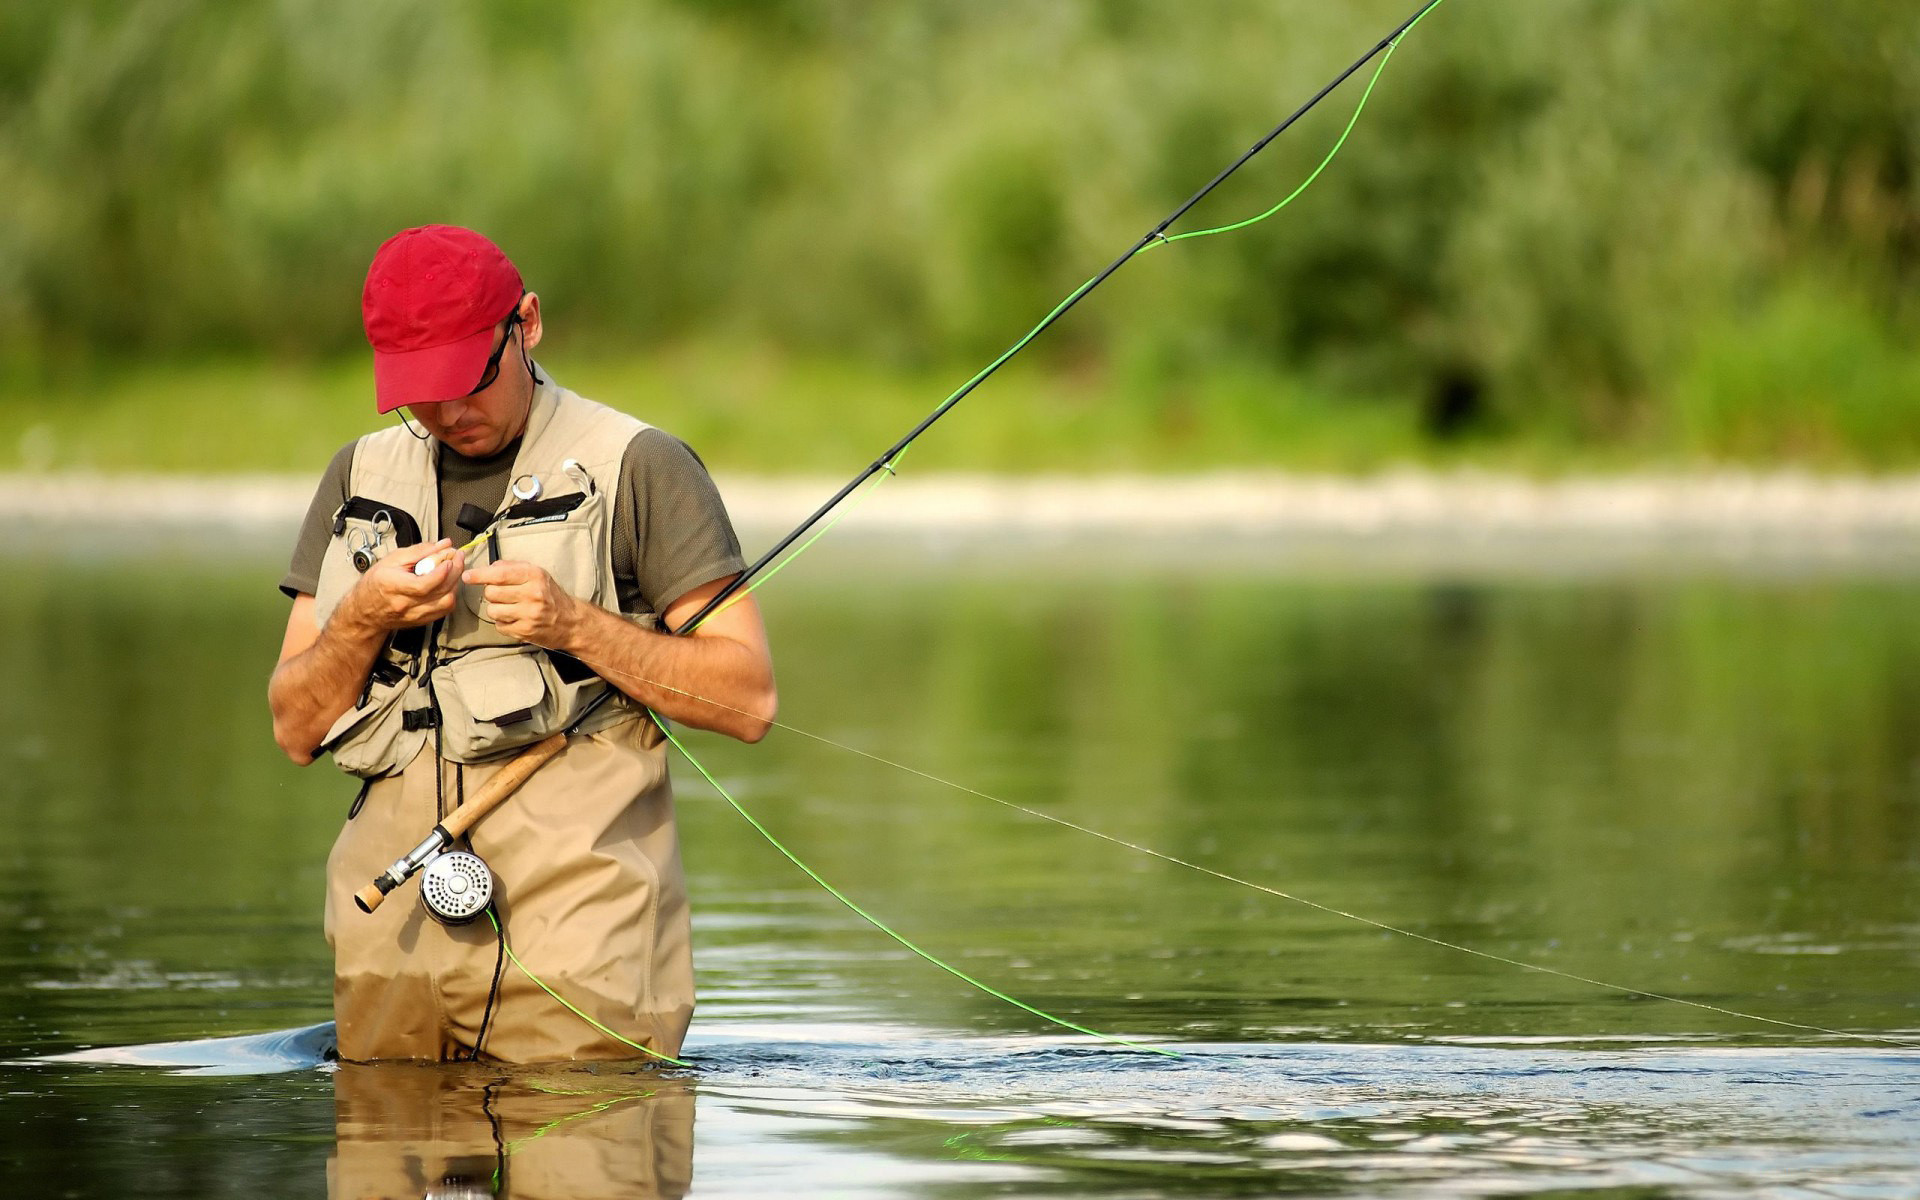 Collection of Fly Fishing Desktop Backgrounds on Spyder Wallpapers  1280×1024 Fishing Wallpapers (46